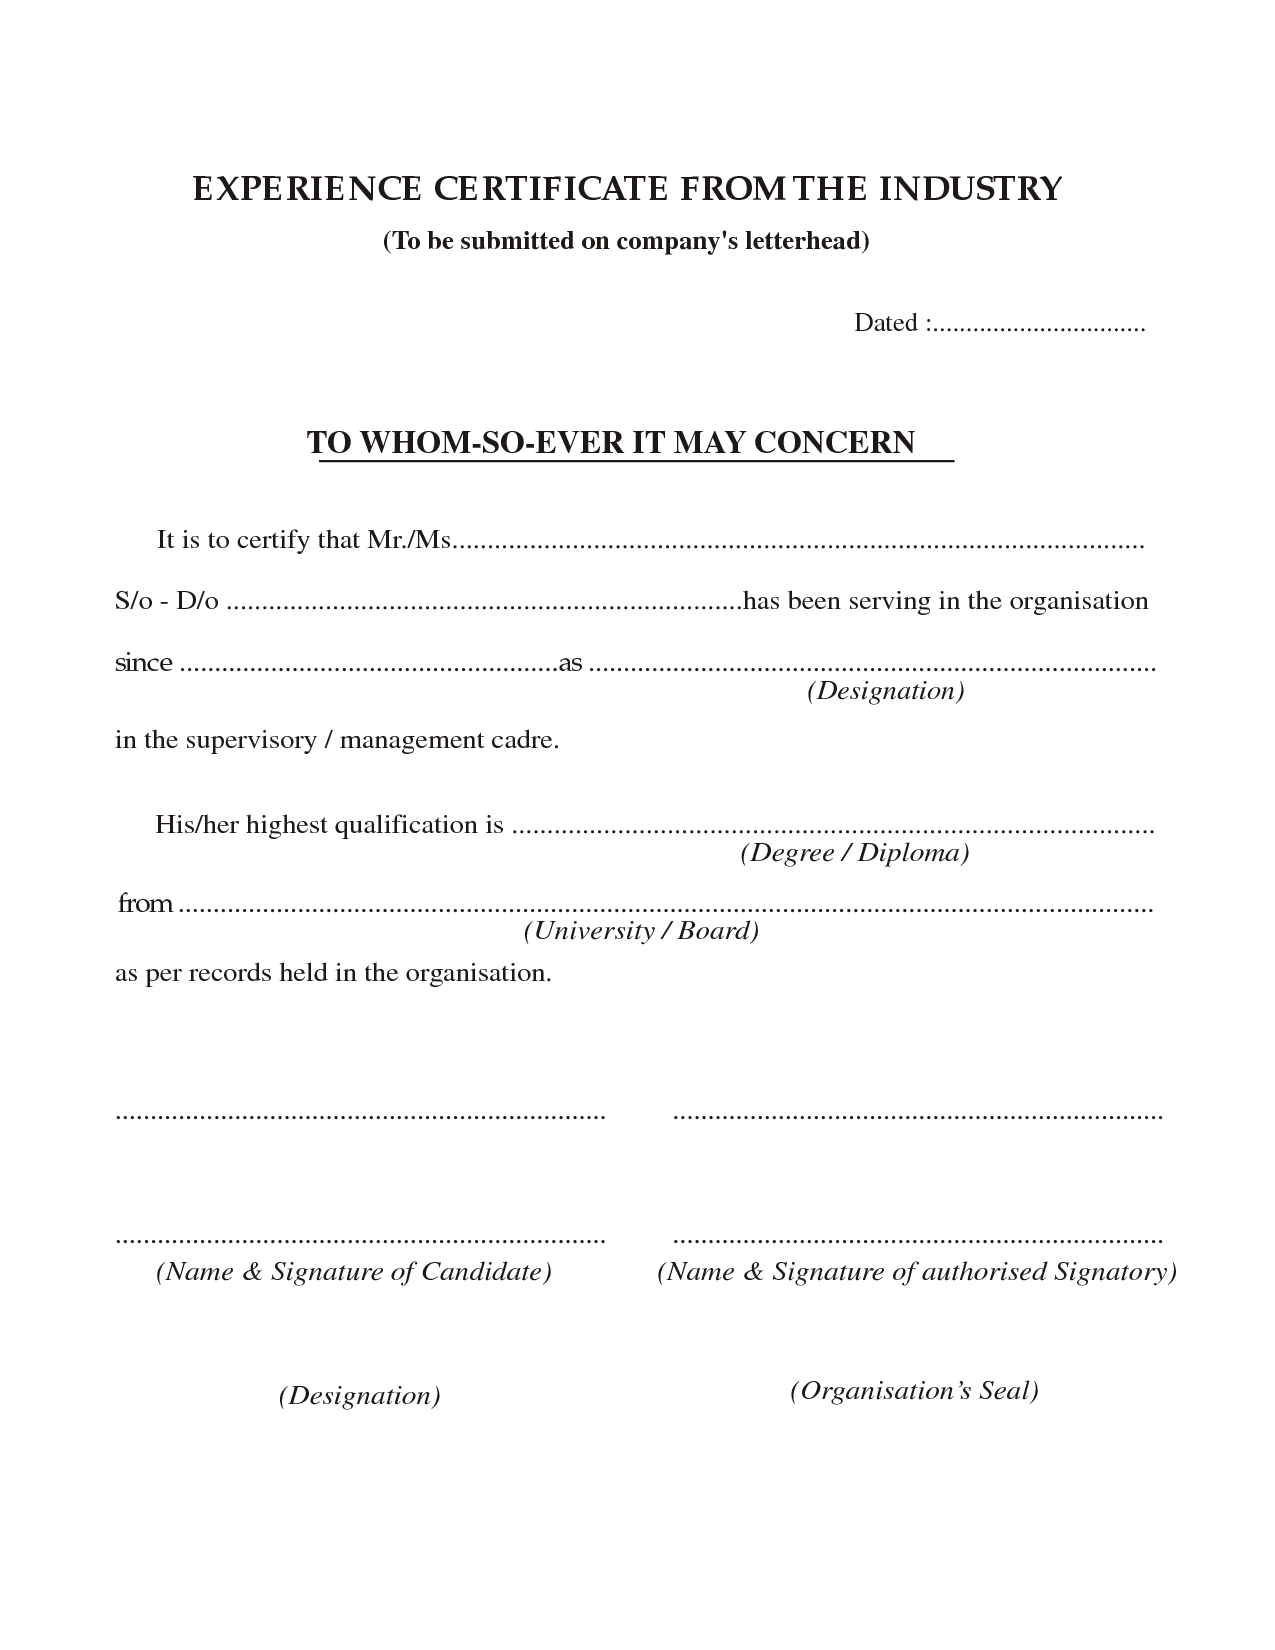 Application For No Objection Certificate For Job Prepossessing Job Experience Certificate Format  Job  Pinterest  Certificate